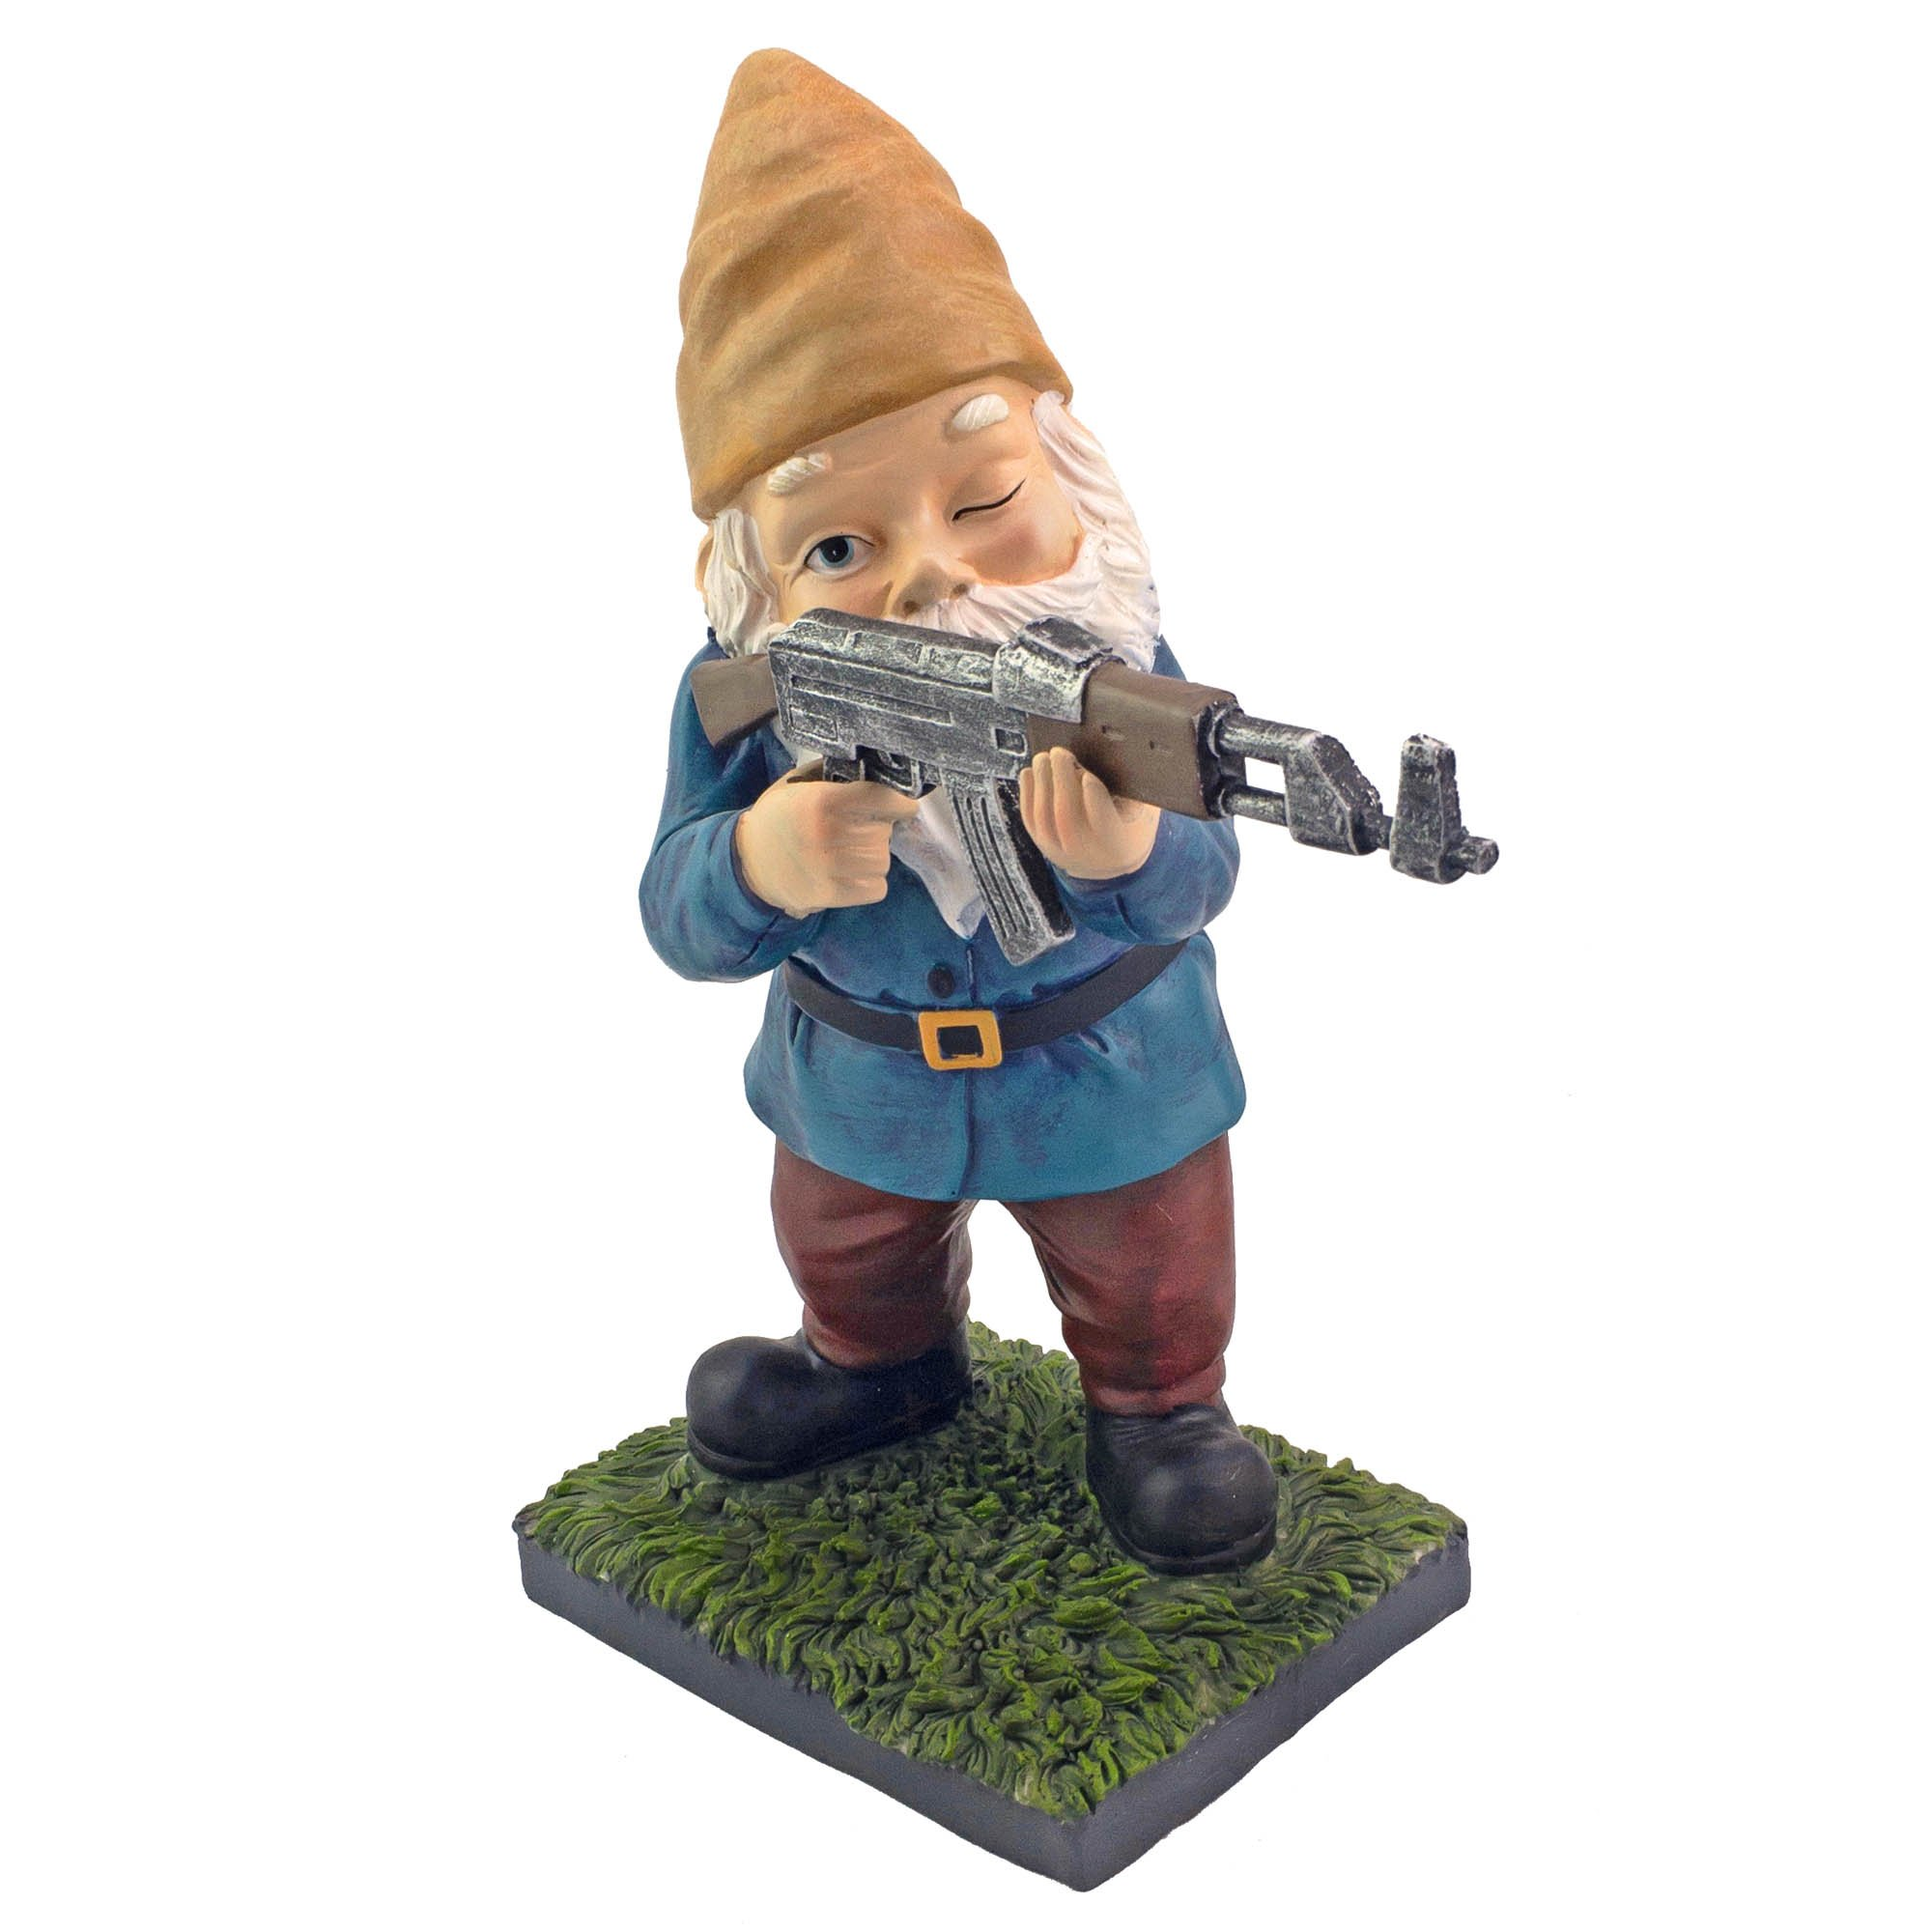 Military Garden Gnome With An AK47   Funny Army Statue, Perfect For Gun Lovers, Military Collectors, Combat Enthusiasts & Army Men   Indoor & Outdoor Lawn Yard Decor (Standing, Traditional)